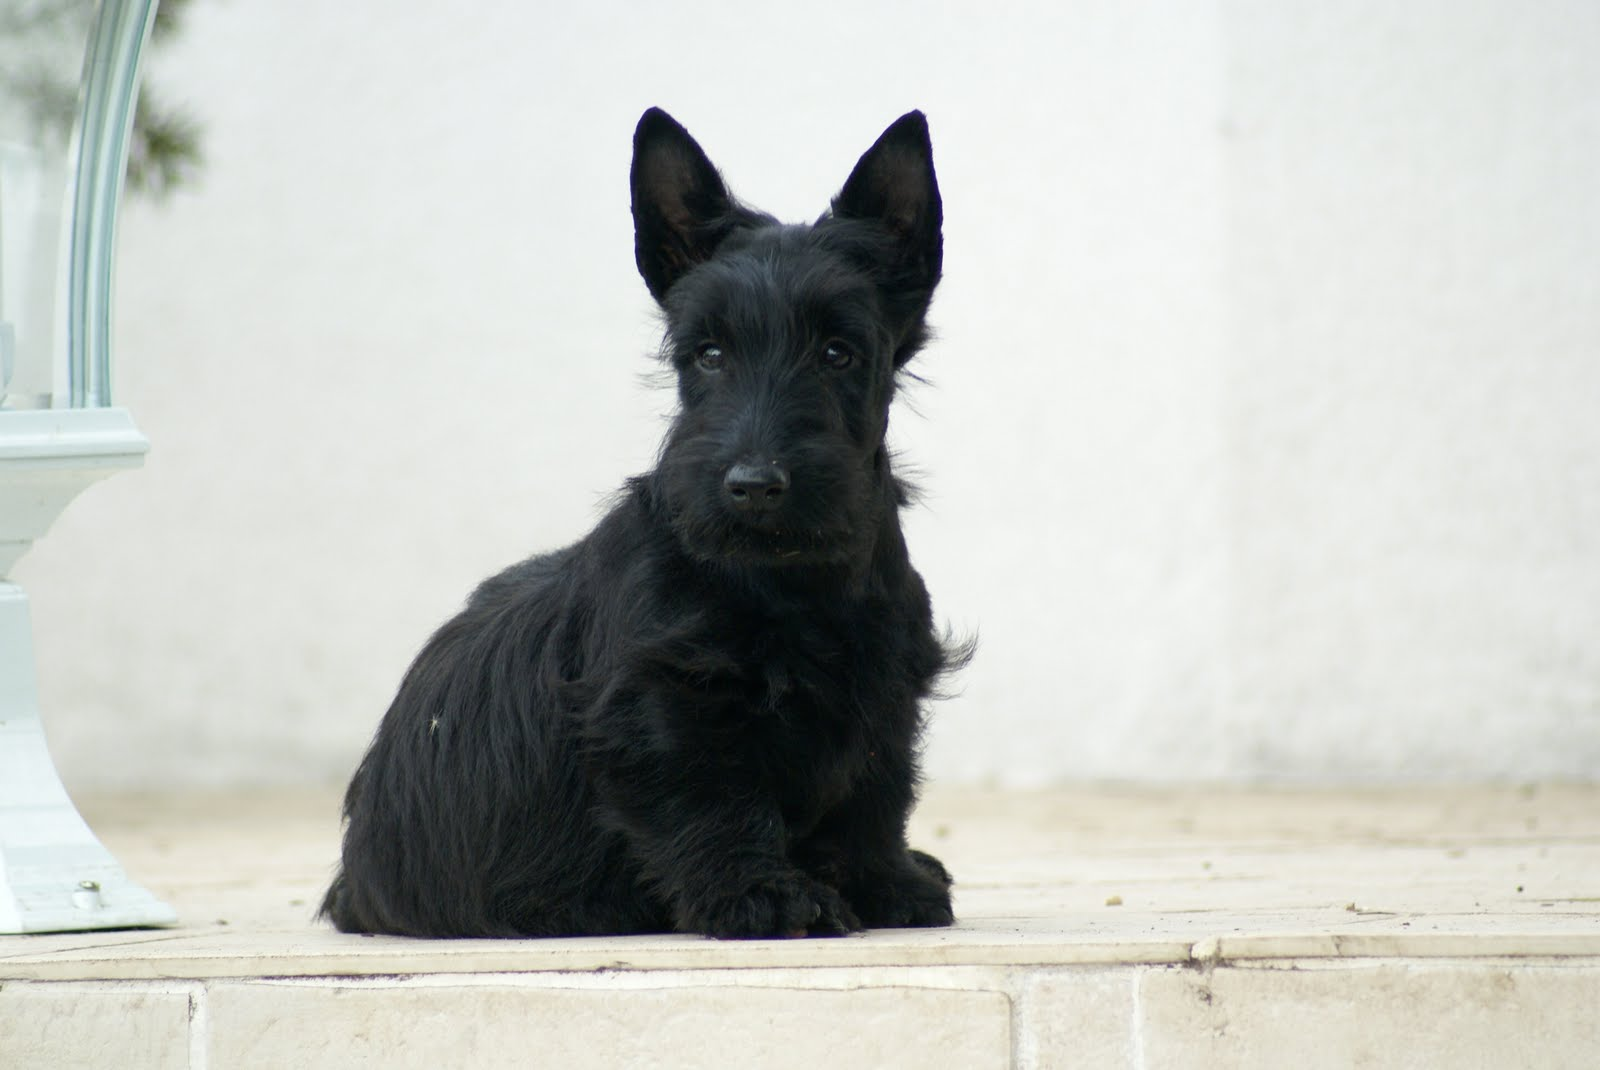 scottish terrier u 39 zara legend of highlands dieu cr a la femme et juste apr s le scott. Black Bedroom Furniture Sets. Home Design Ideas